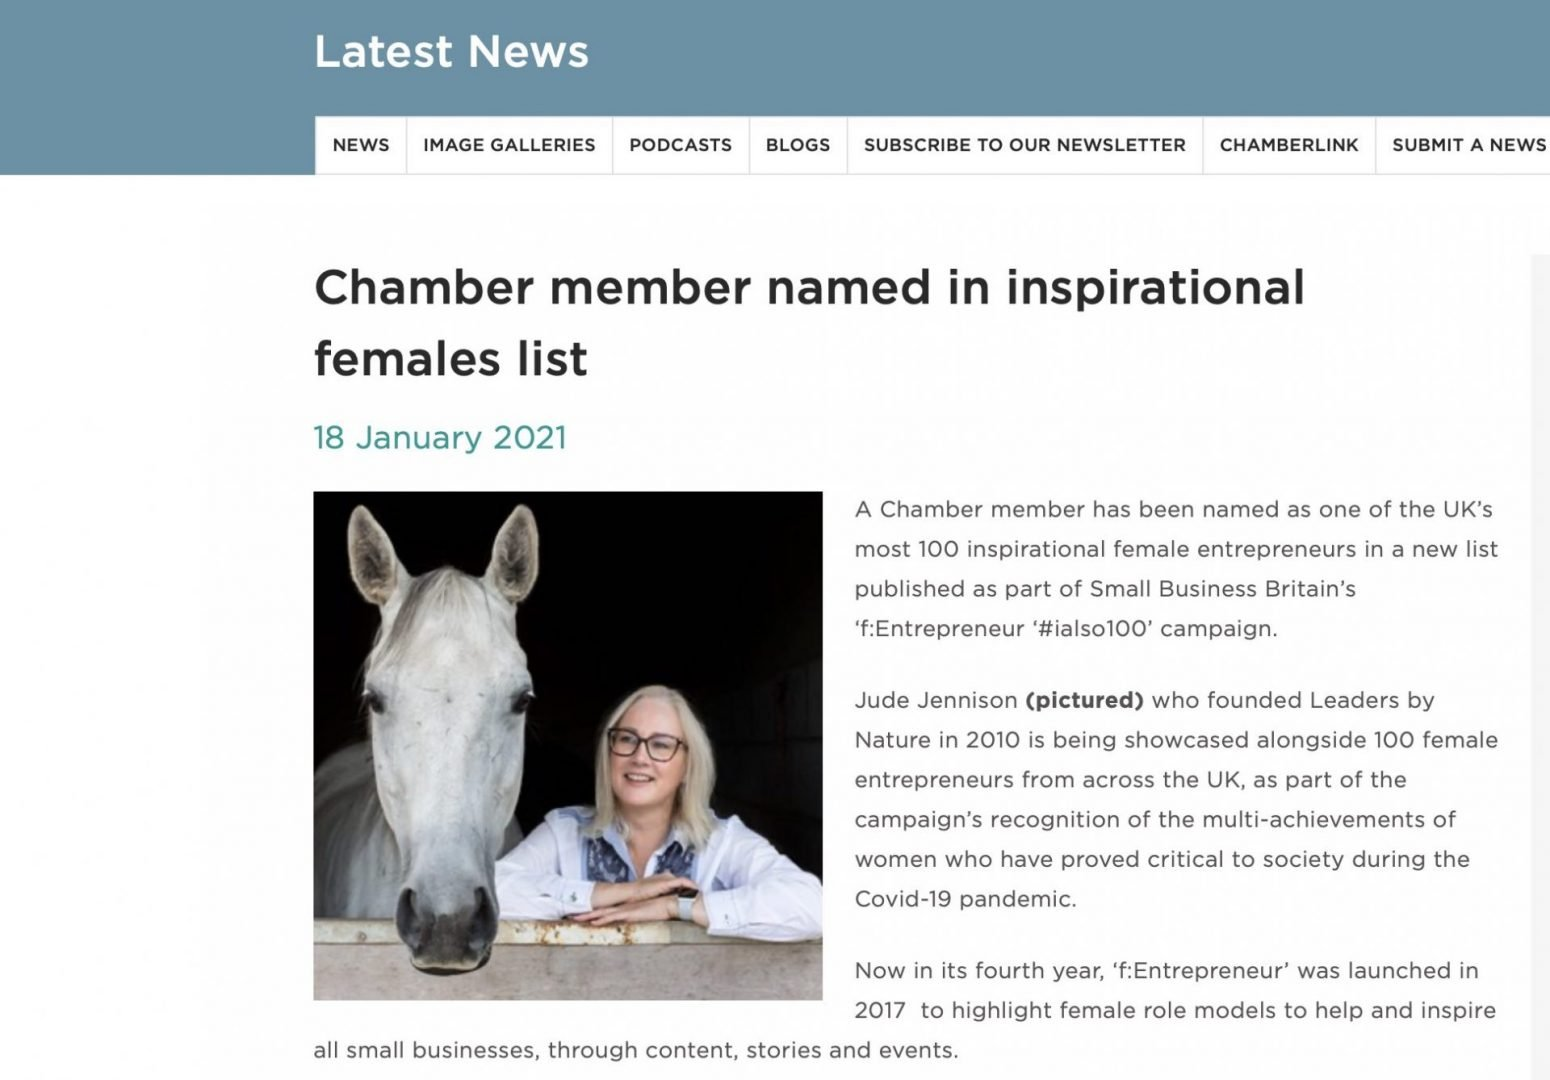 Chamber of Commerce article